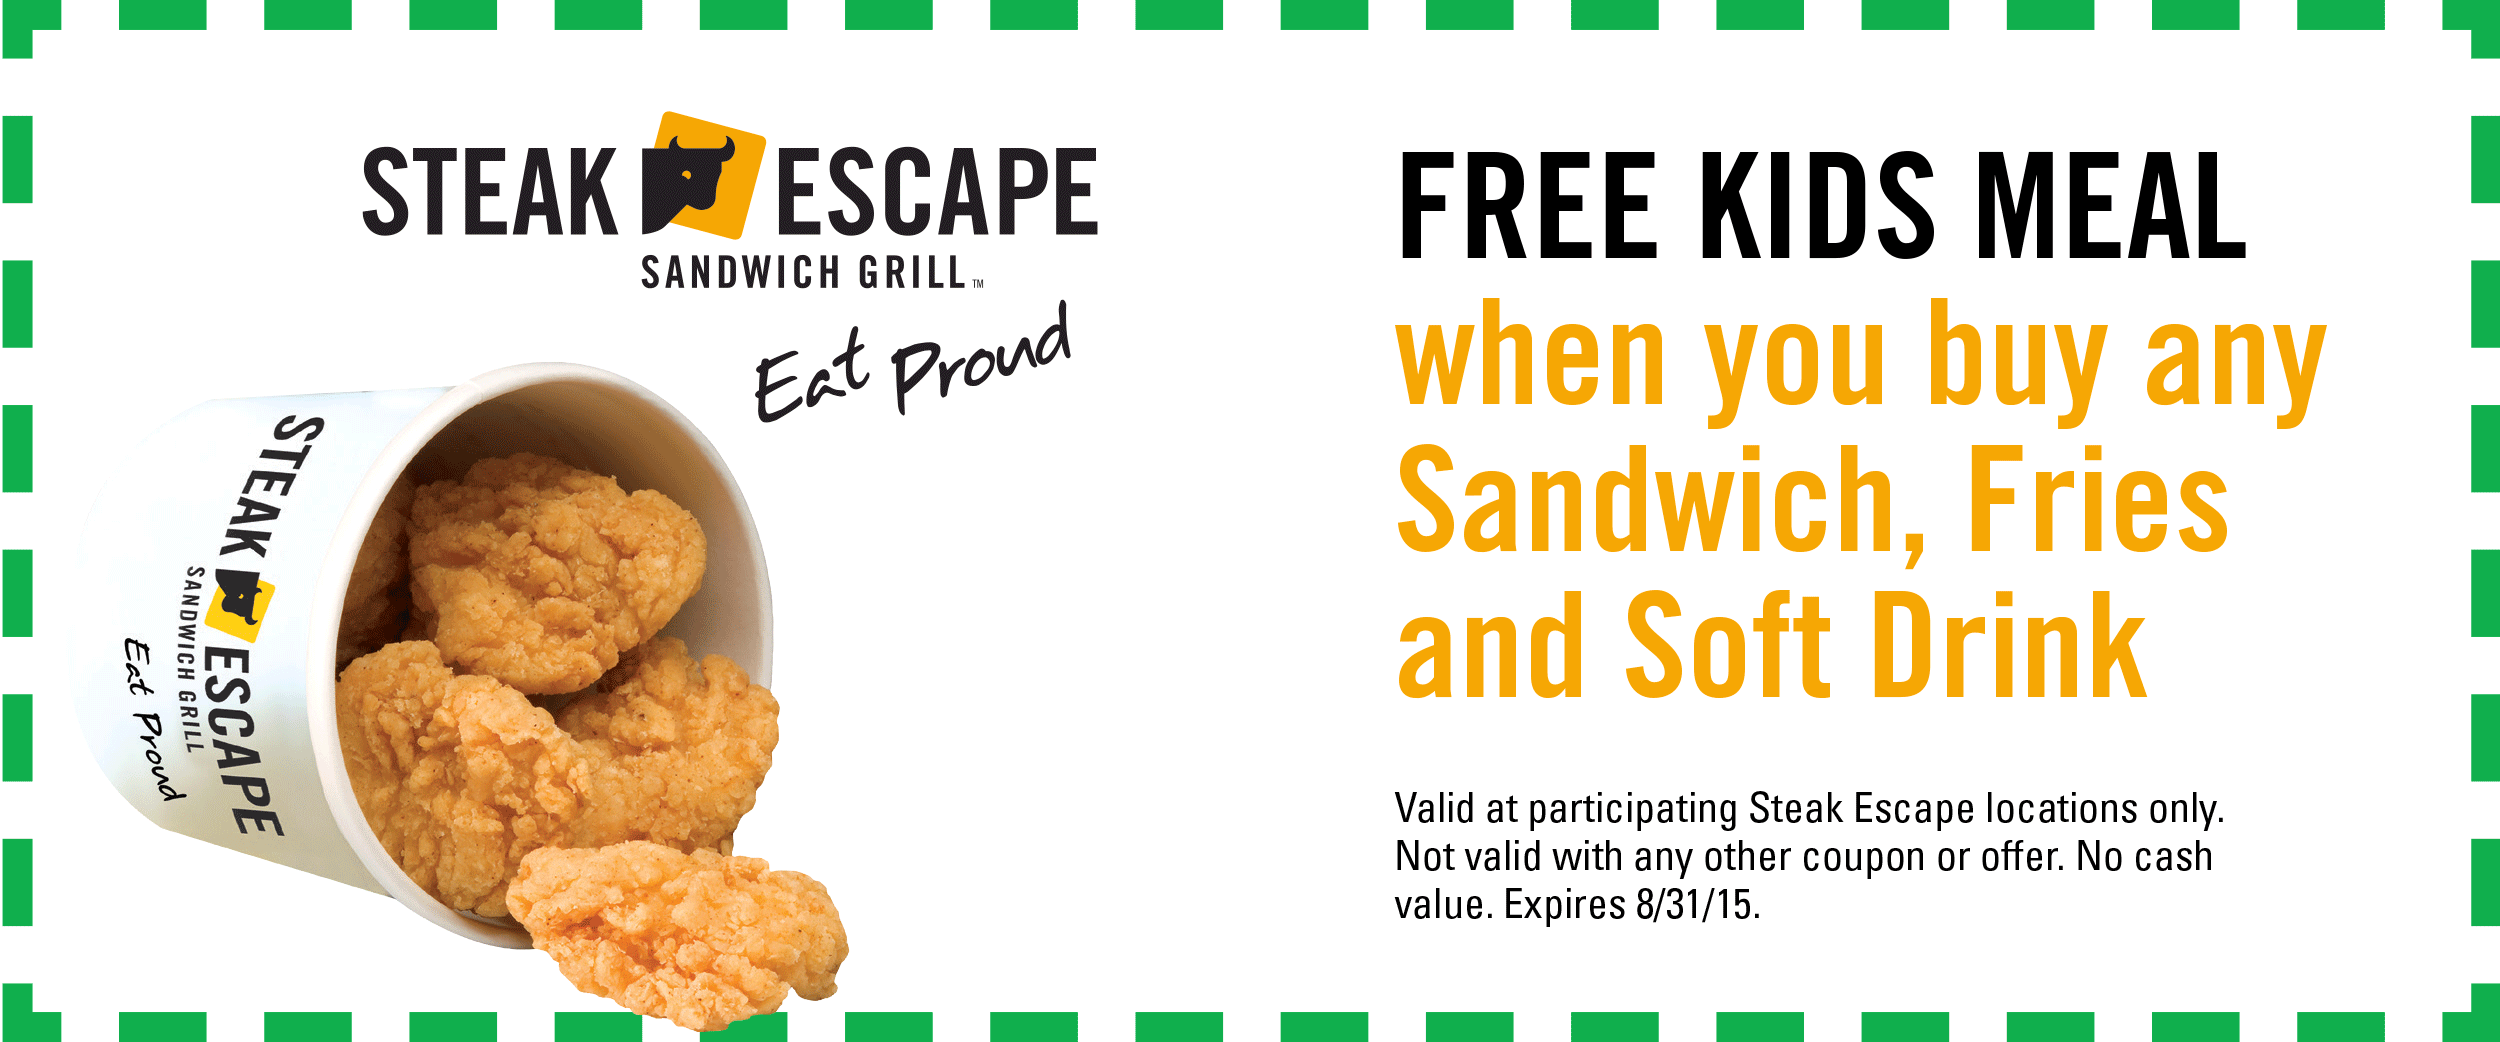 Steak Escape Coupon June 2017 Free kids meal with yours at Steak Escape sandwich grill